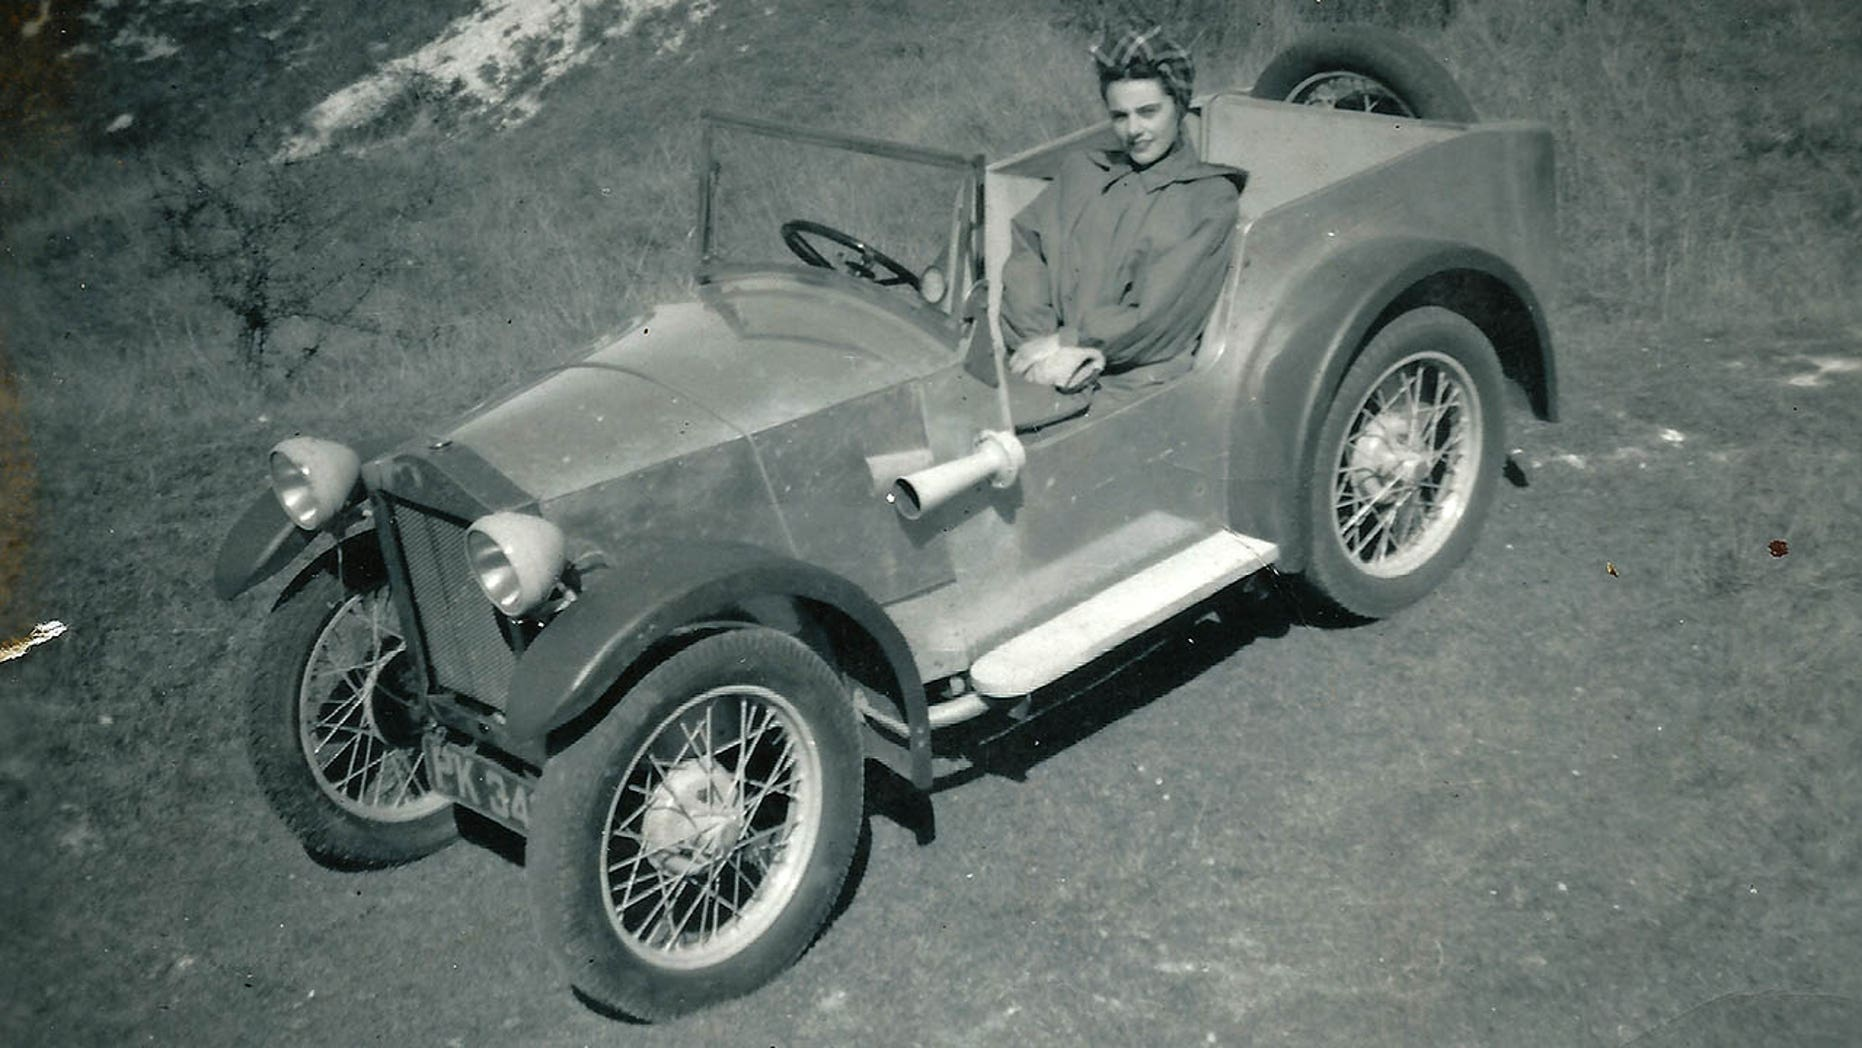 Colin Chapman built the Mark I in a garage owned by the parents of her future wife, Hazel.